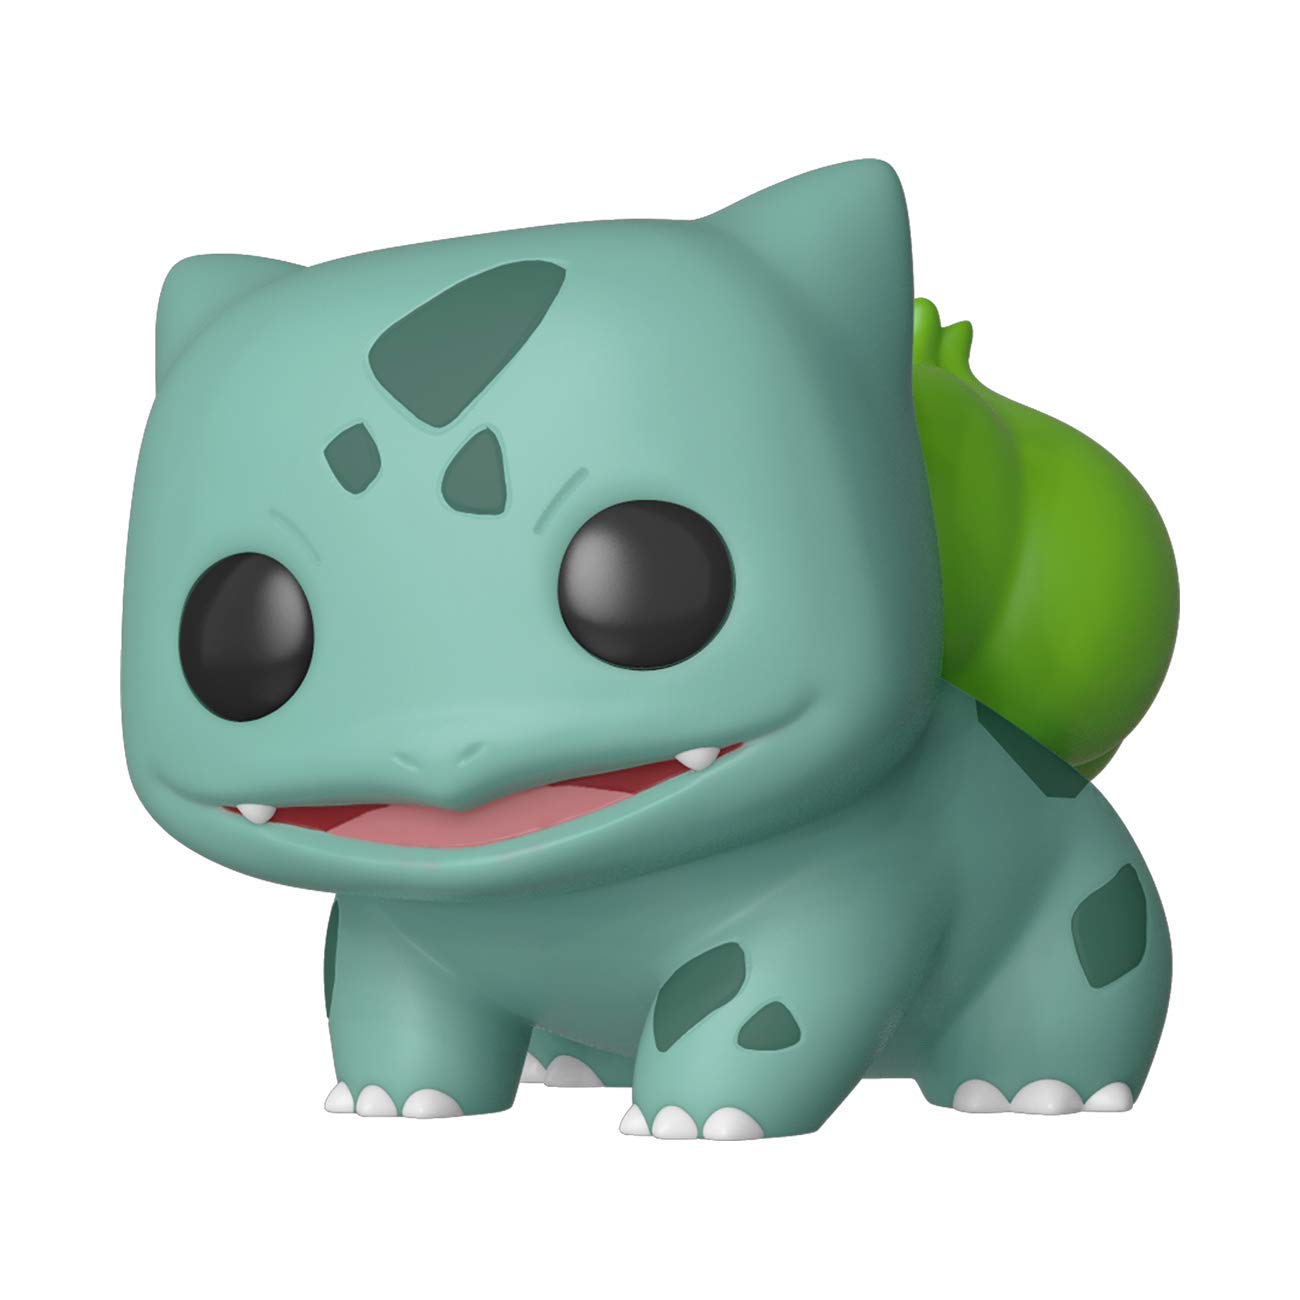 dd51d0fb Announced earlier today, Bulbasaur will soon be receiving its own Funko Pop.  Amazon has since opened pre-orders here. Pricing is set at $10.99